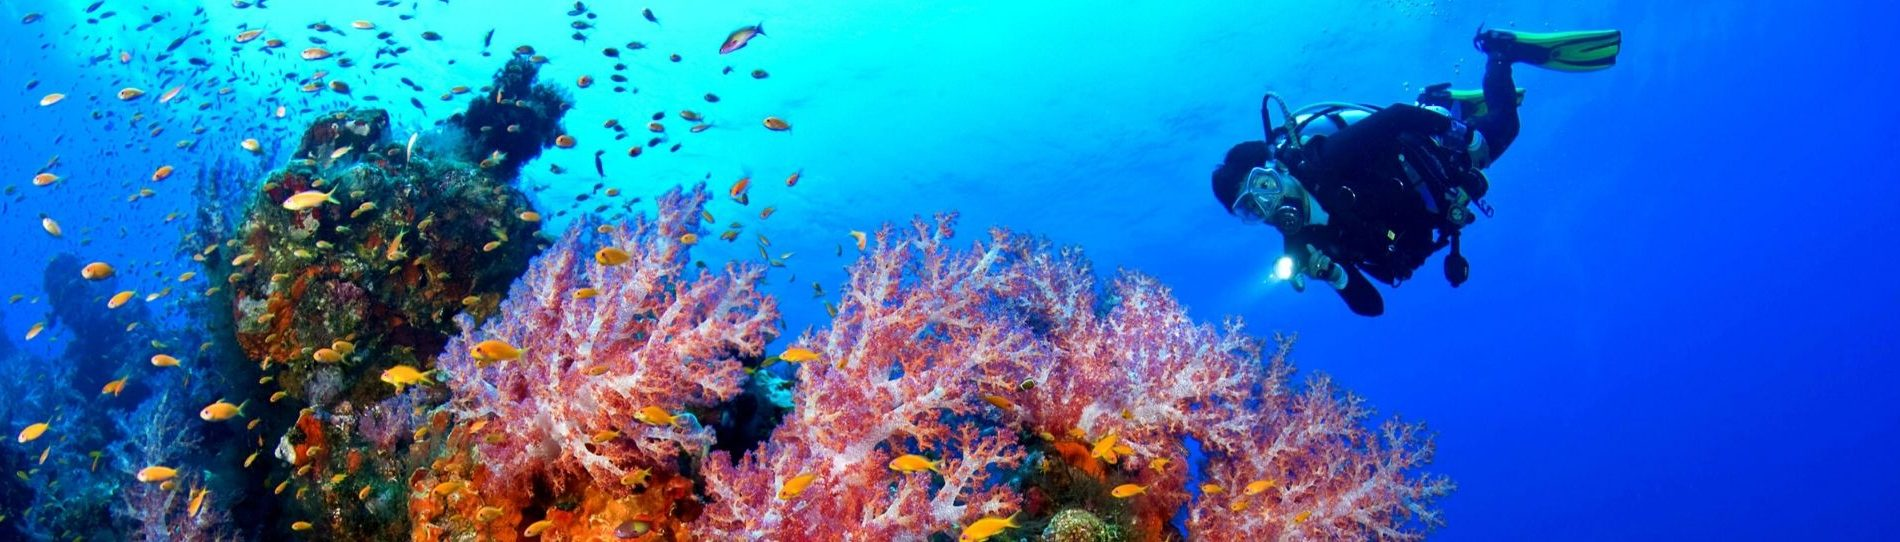 scuba diving or snorkeling in bay of islands new zealand